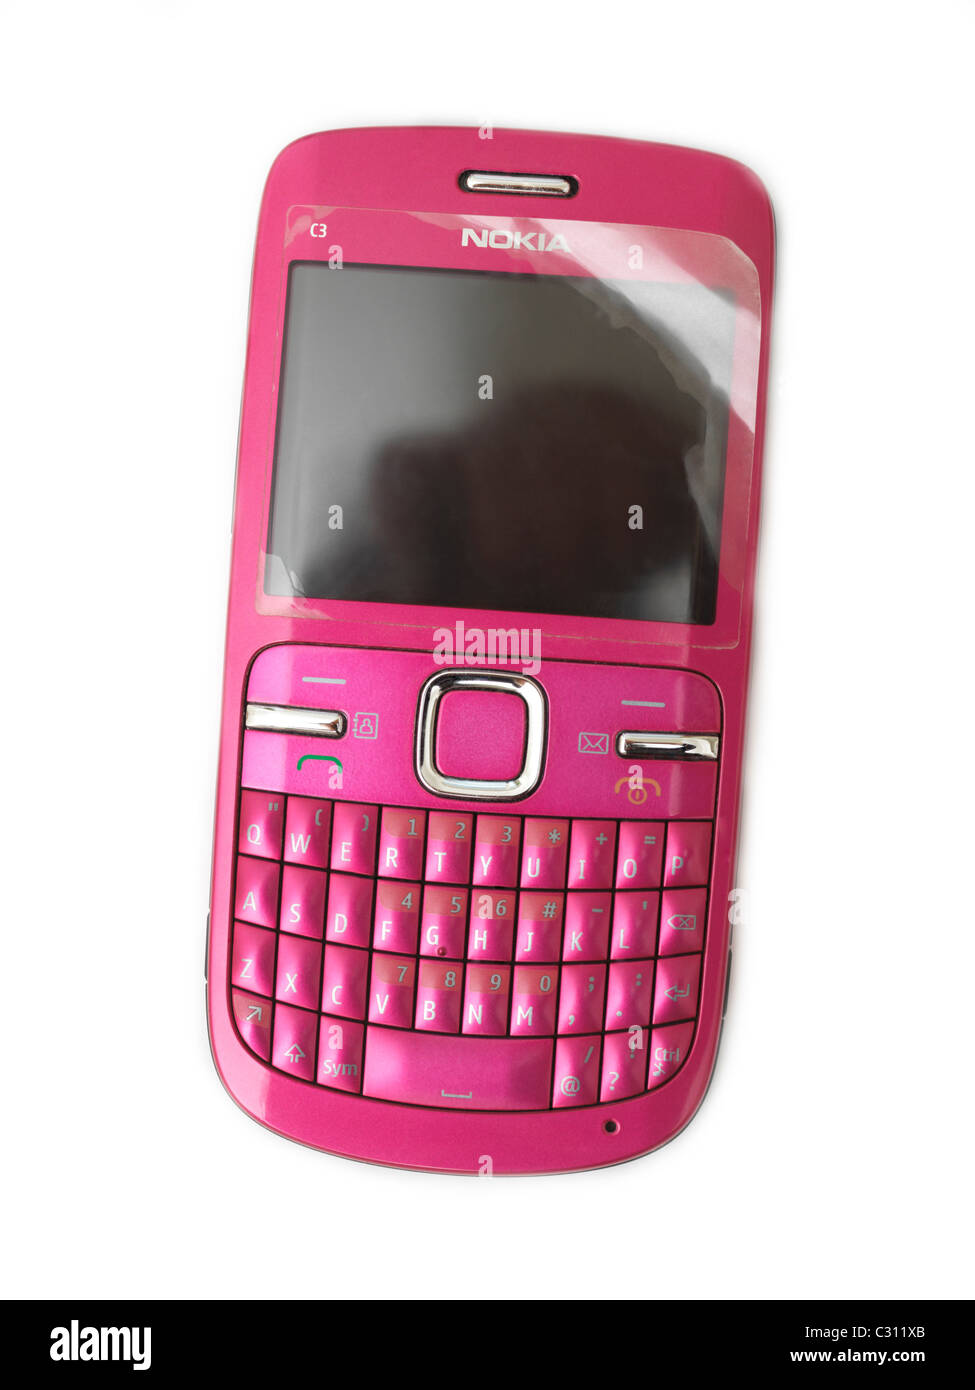 Pink Nokia Mobile Phone - Stock Image